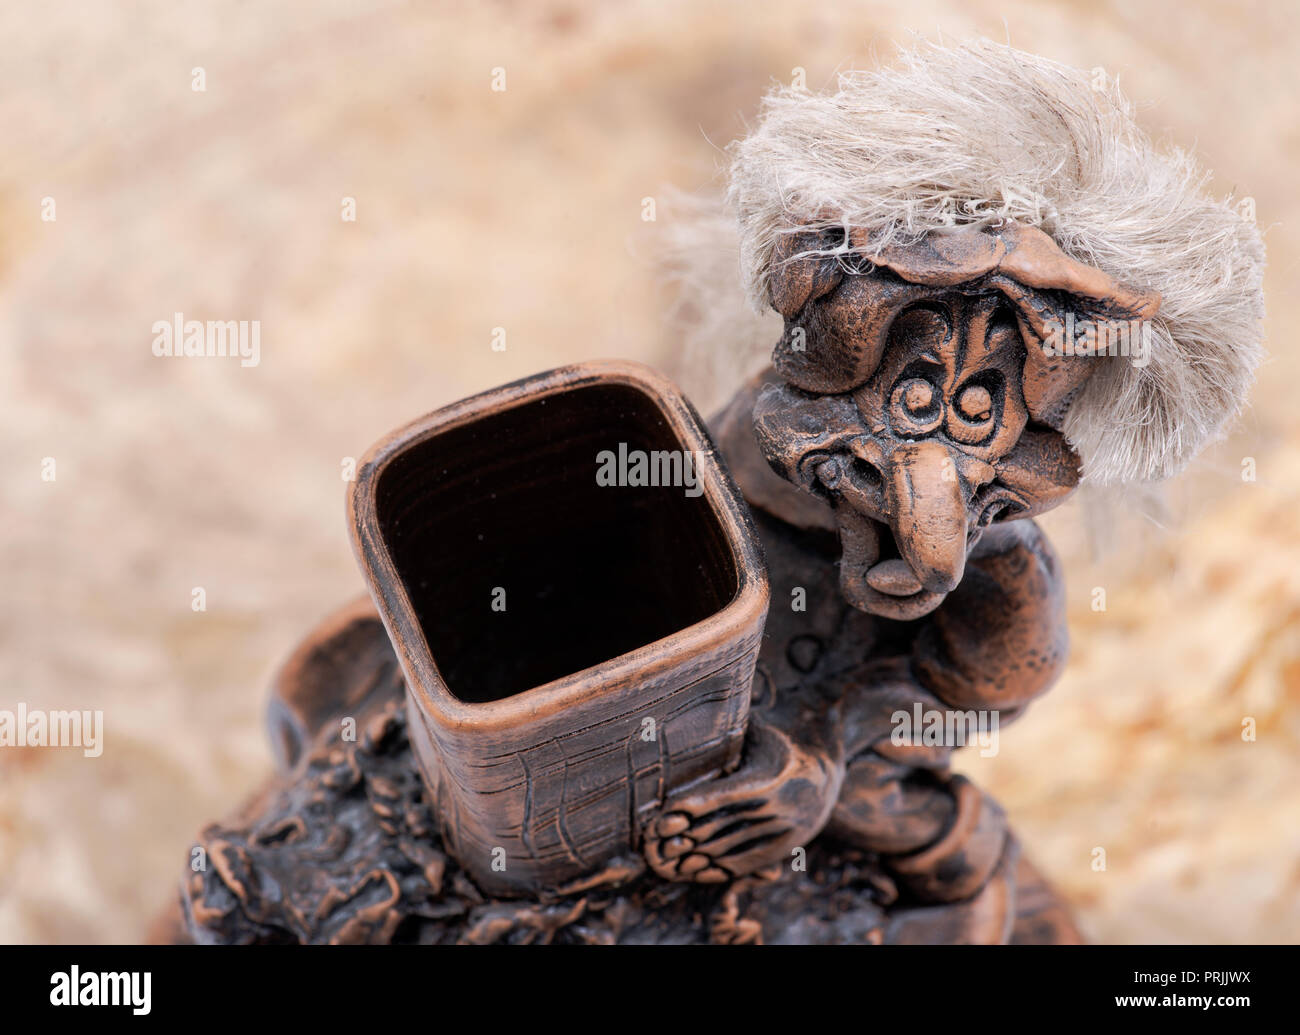 Demon Sitting Stock Photos & Demon Sitting Stock Images - Alamy